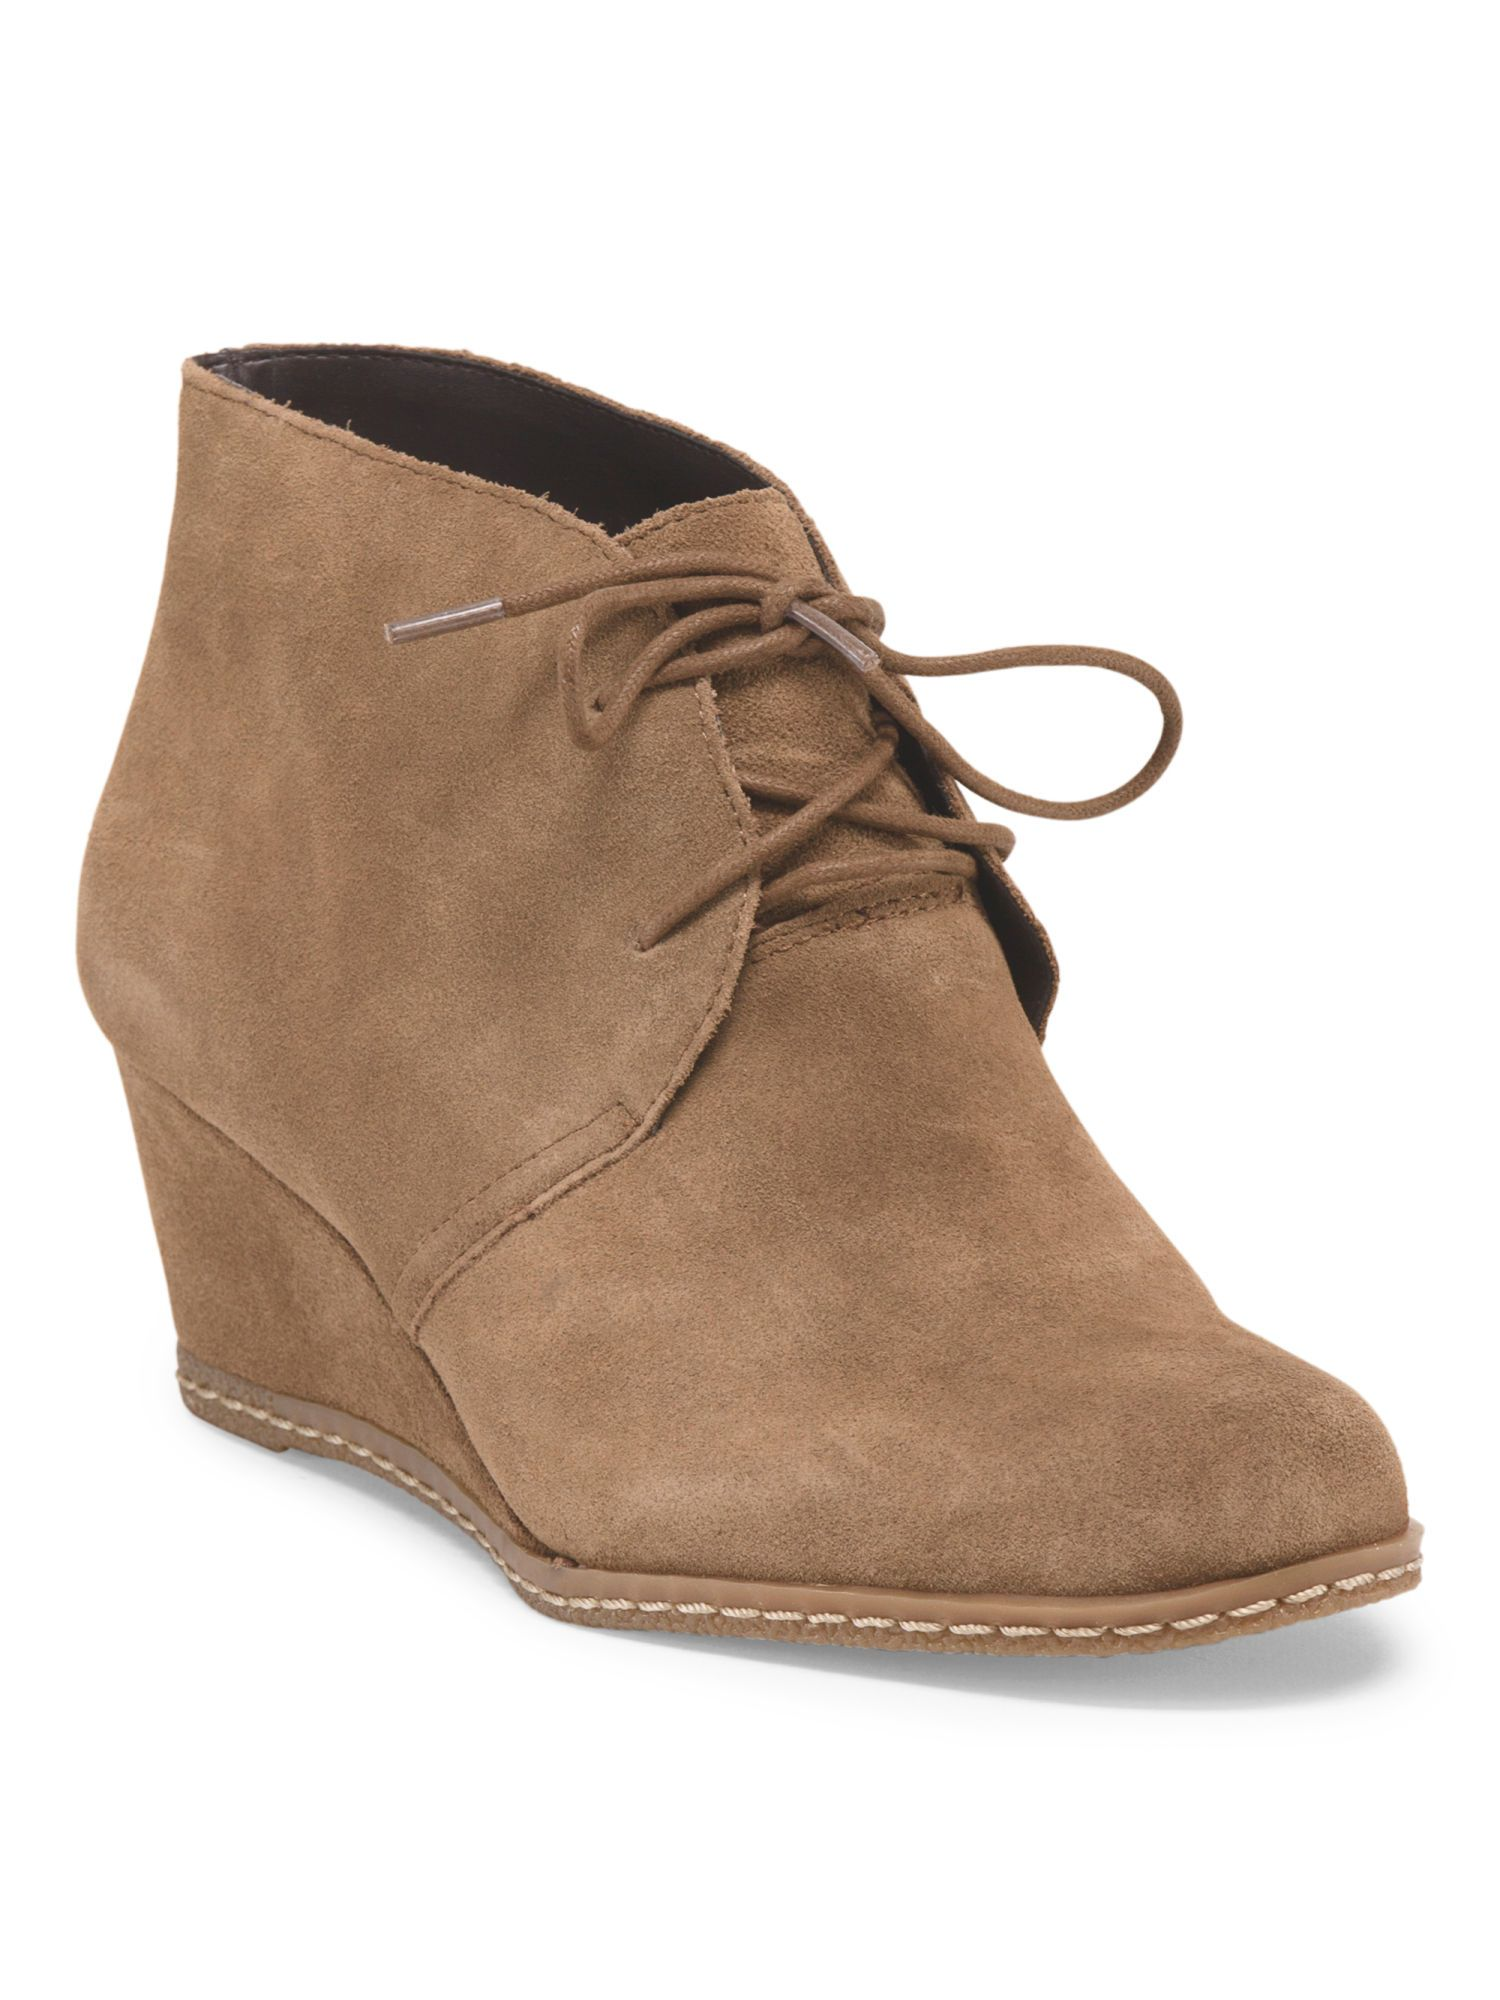 9f5f5b6925181 FRANCO SARTO Suede Lace Up Hidden Wedge- just found these at Marshall's!!!  Score!!